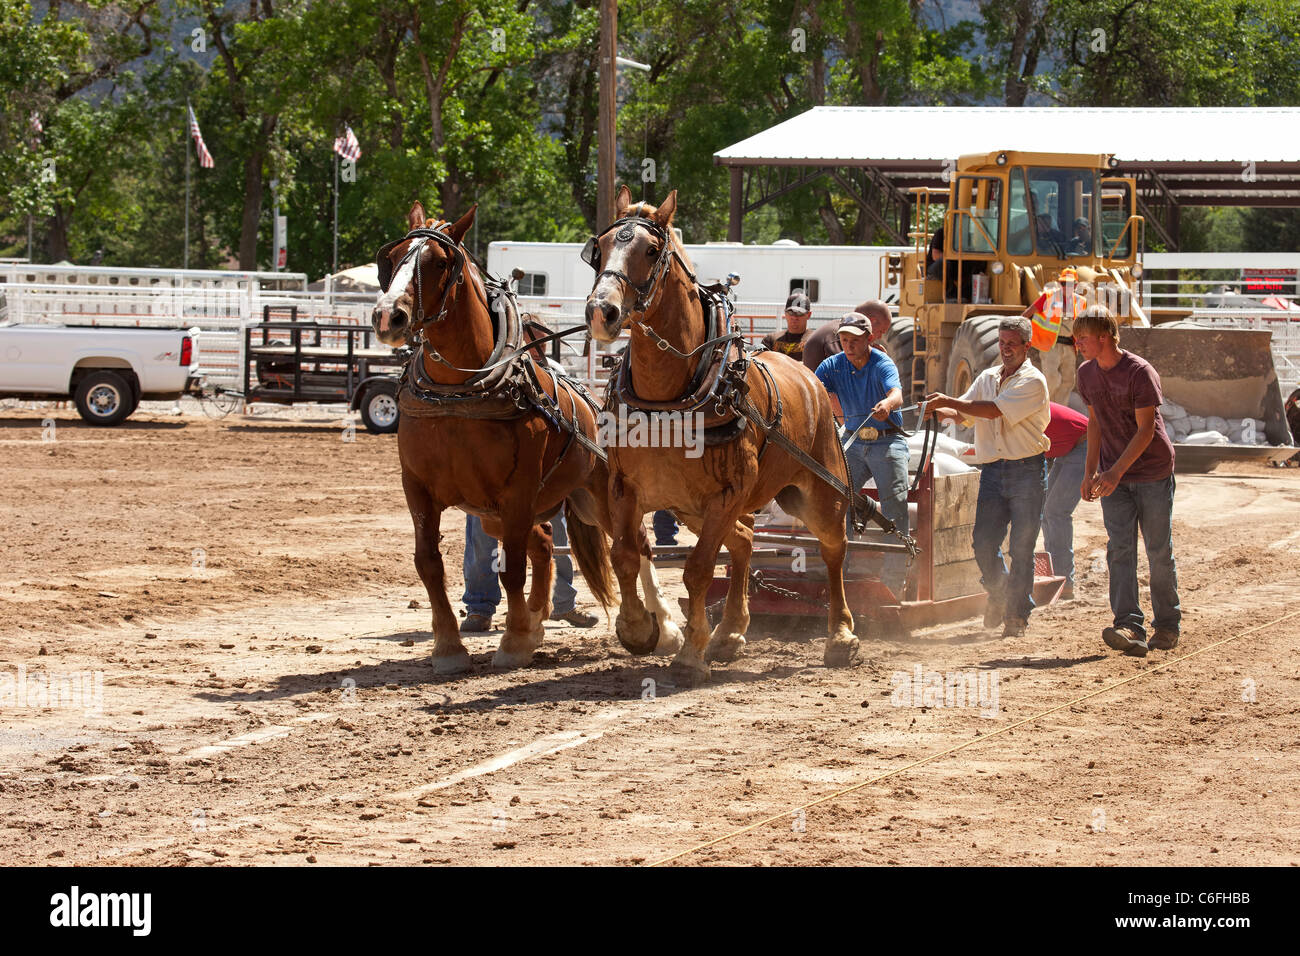 Draft Horse Teamster Pulling Competition At Local County Fair With Stock Photo Alamy